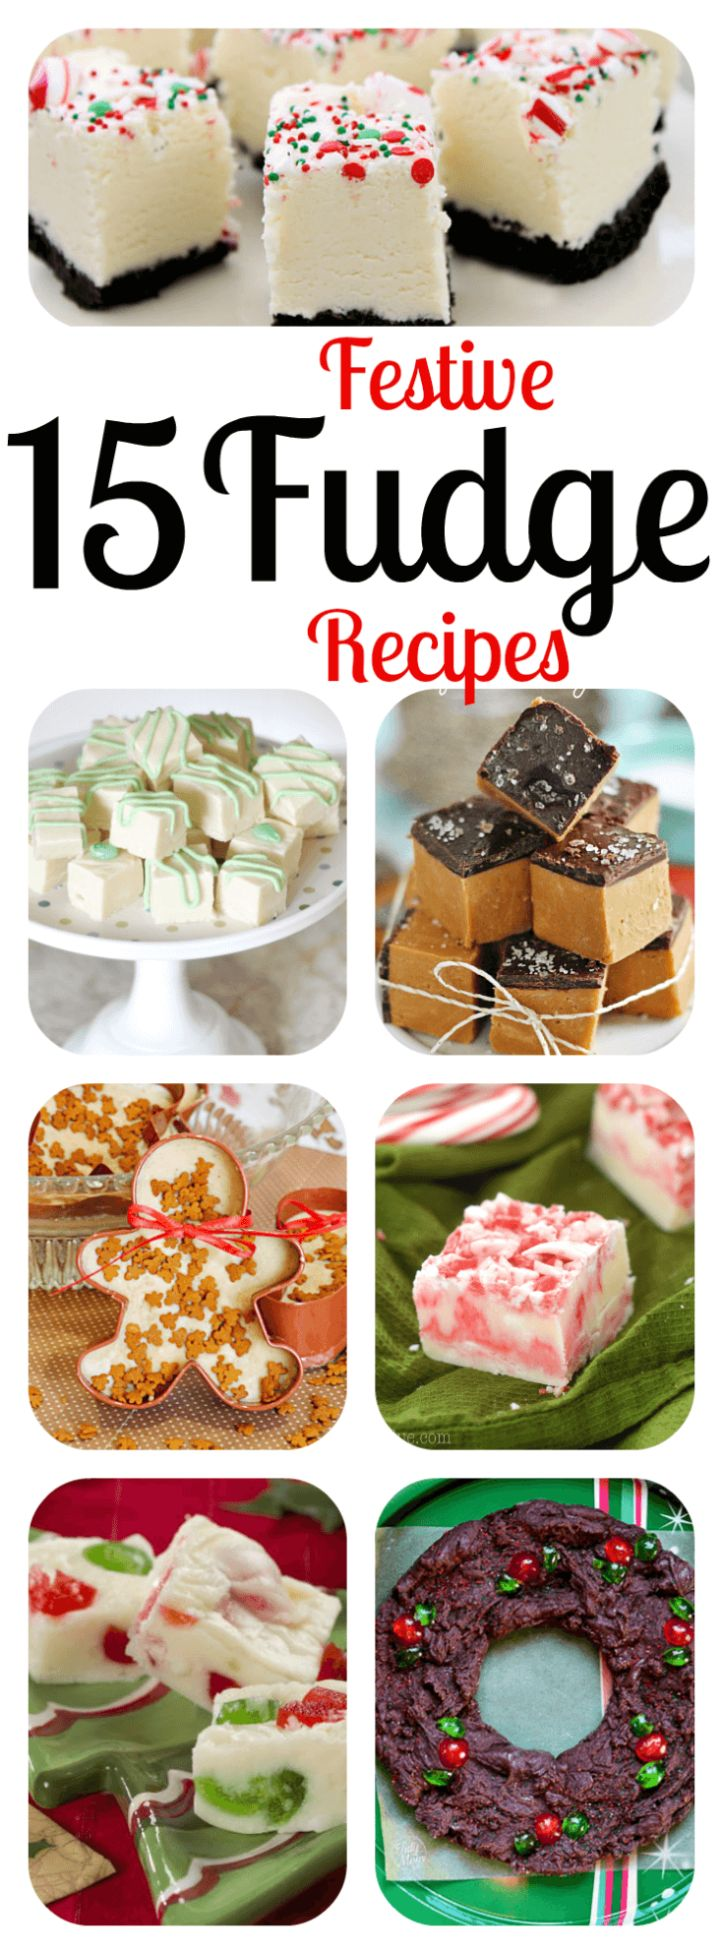 Homemade Christmas Fudge Recipes - the perfect Christmas Gift! The best DIY holiday fudge: Gingerbread, Mint, Candy Cane, Kahlua, Bailey's, Salted Caramel, and more!